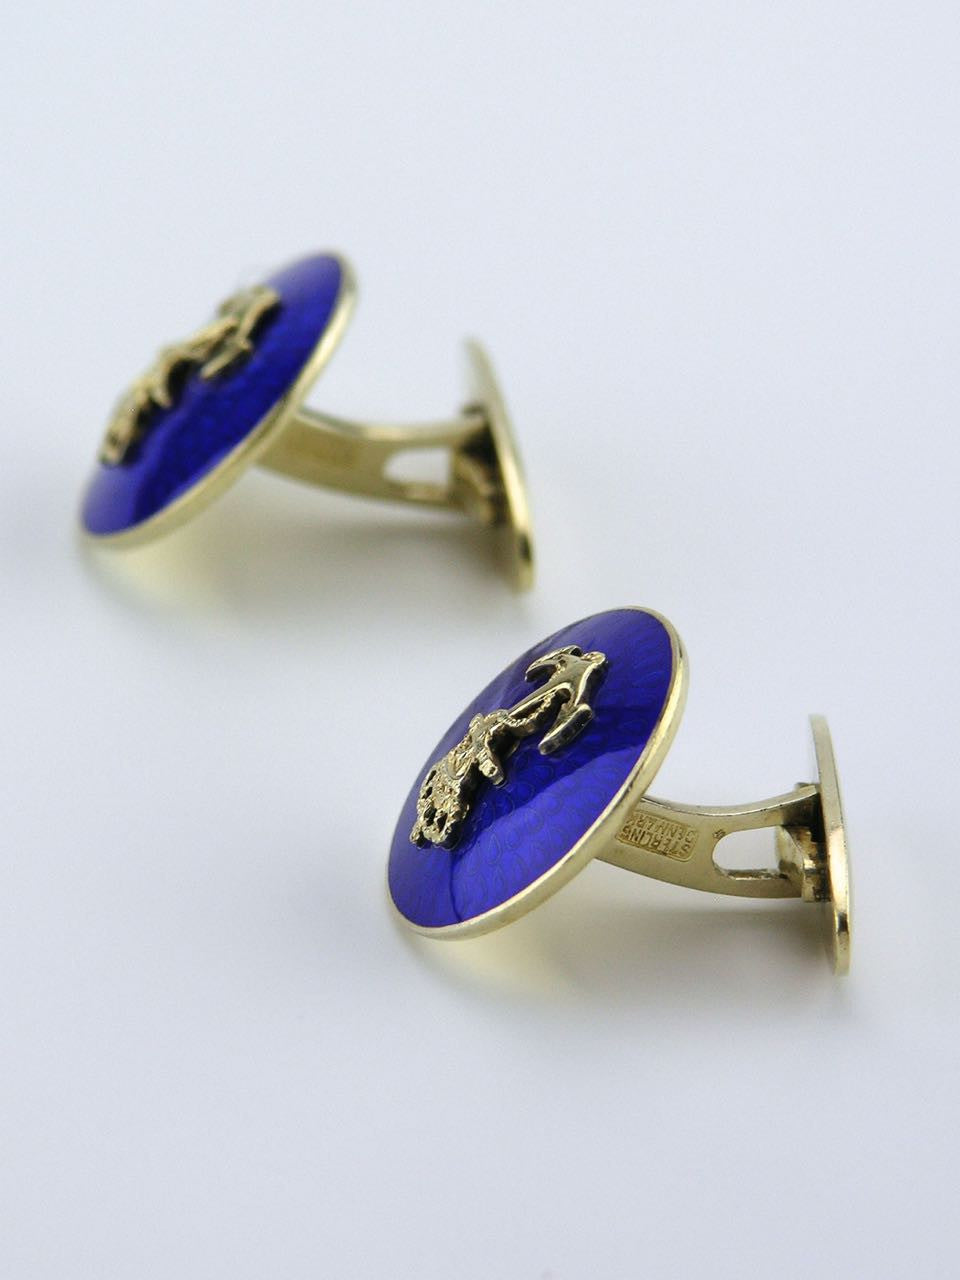 Anton Michelsen silver and enamel nautical motif cufflinks